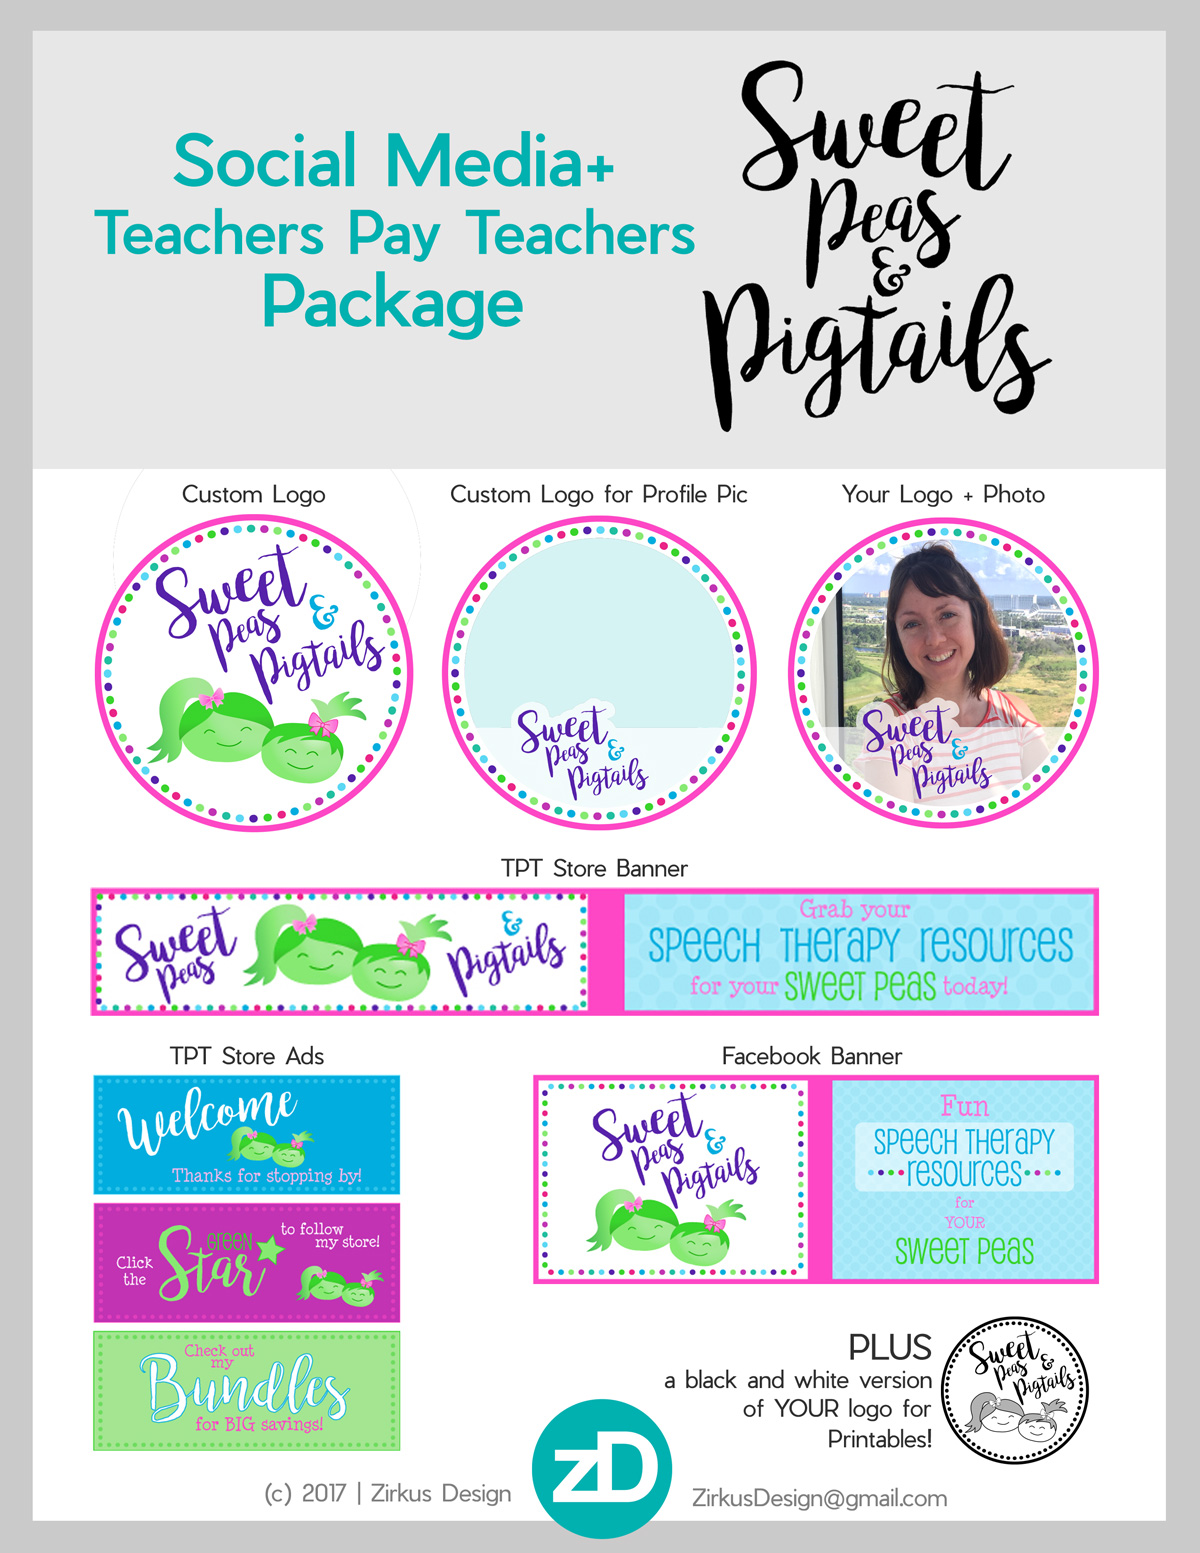 Zirkus Design | Teachers Pay Teachers Store Promo Package -Sweet Peas and Pigtails